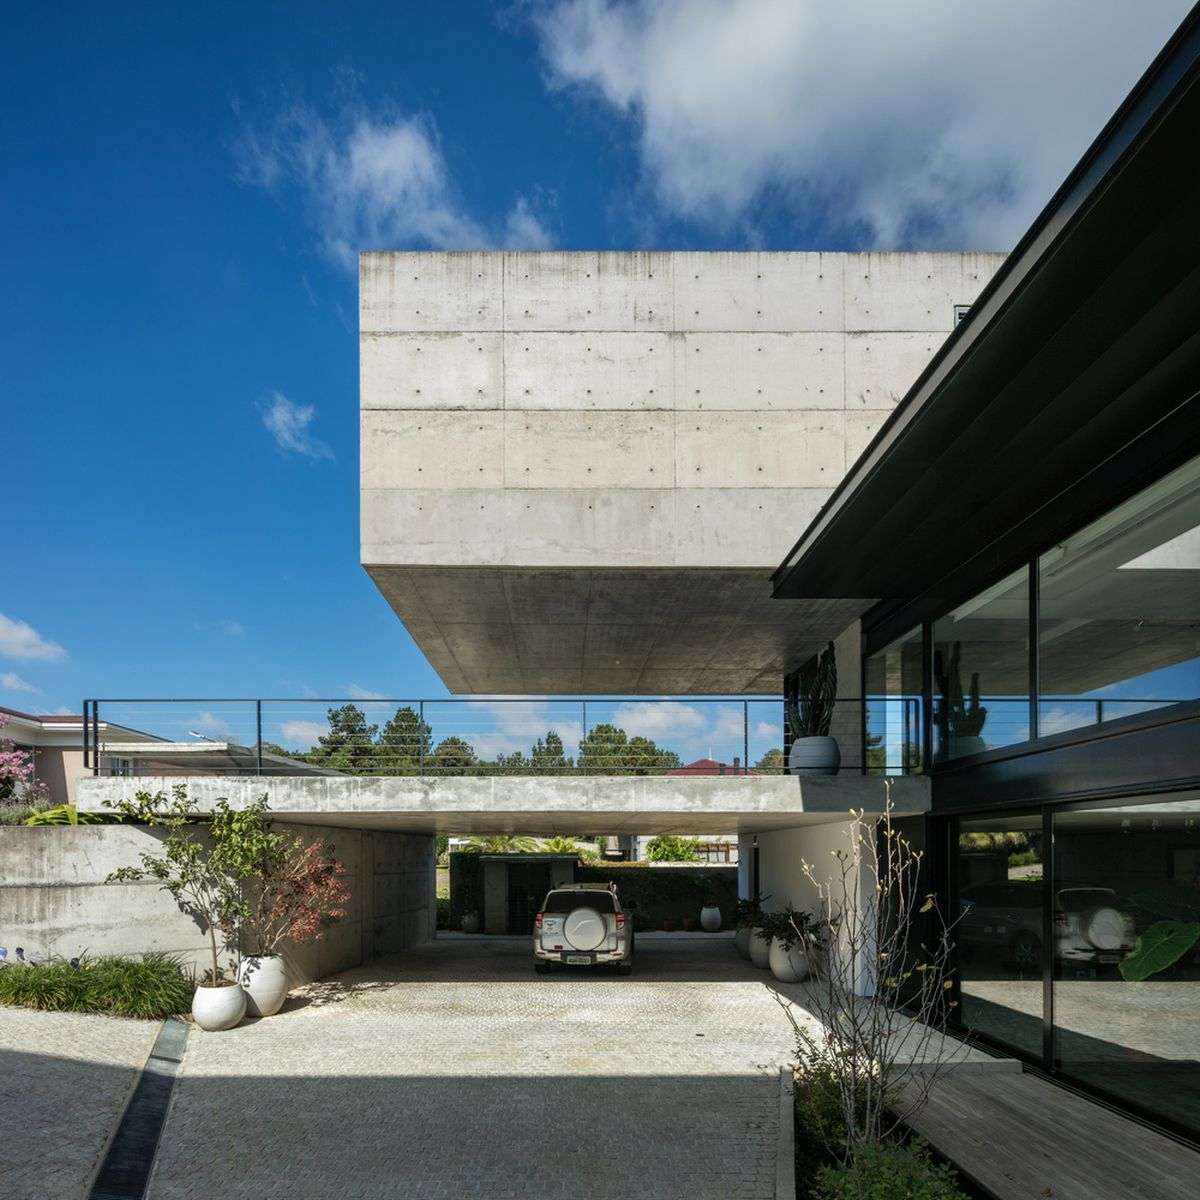 The top floor is an elongated concrete box that cantilevers above the garage and the terrace